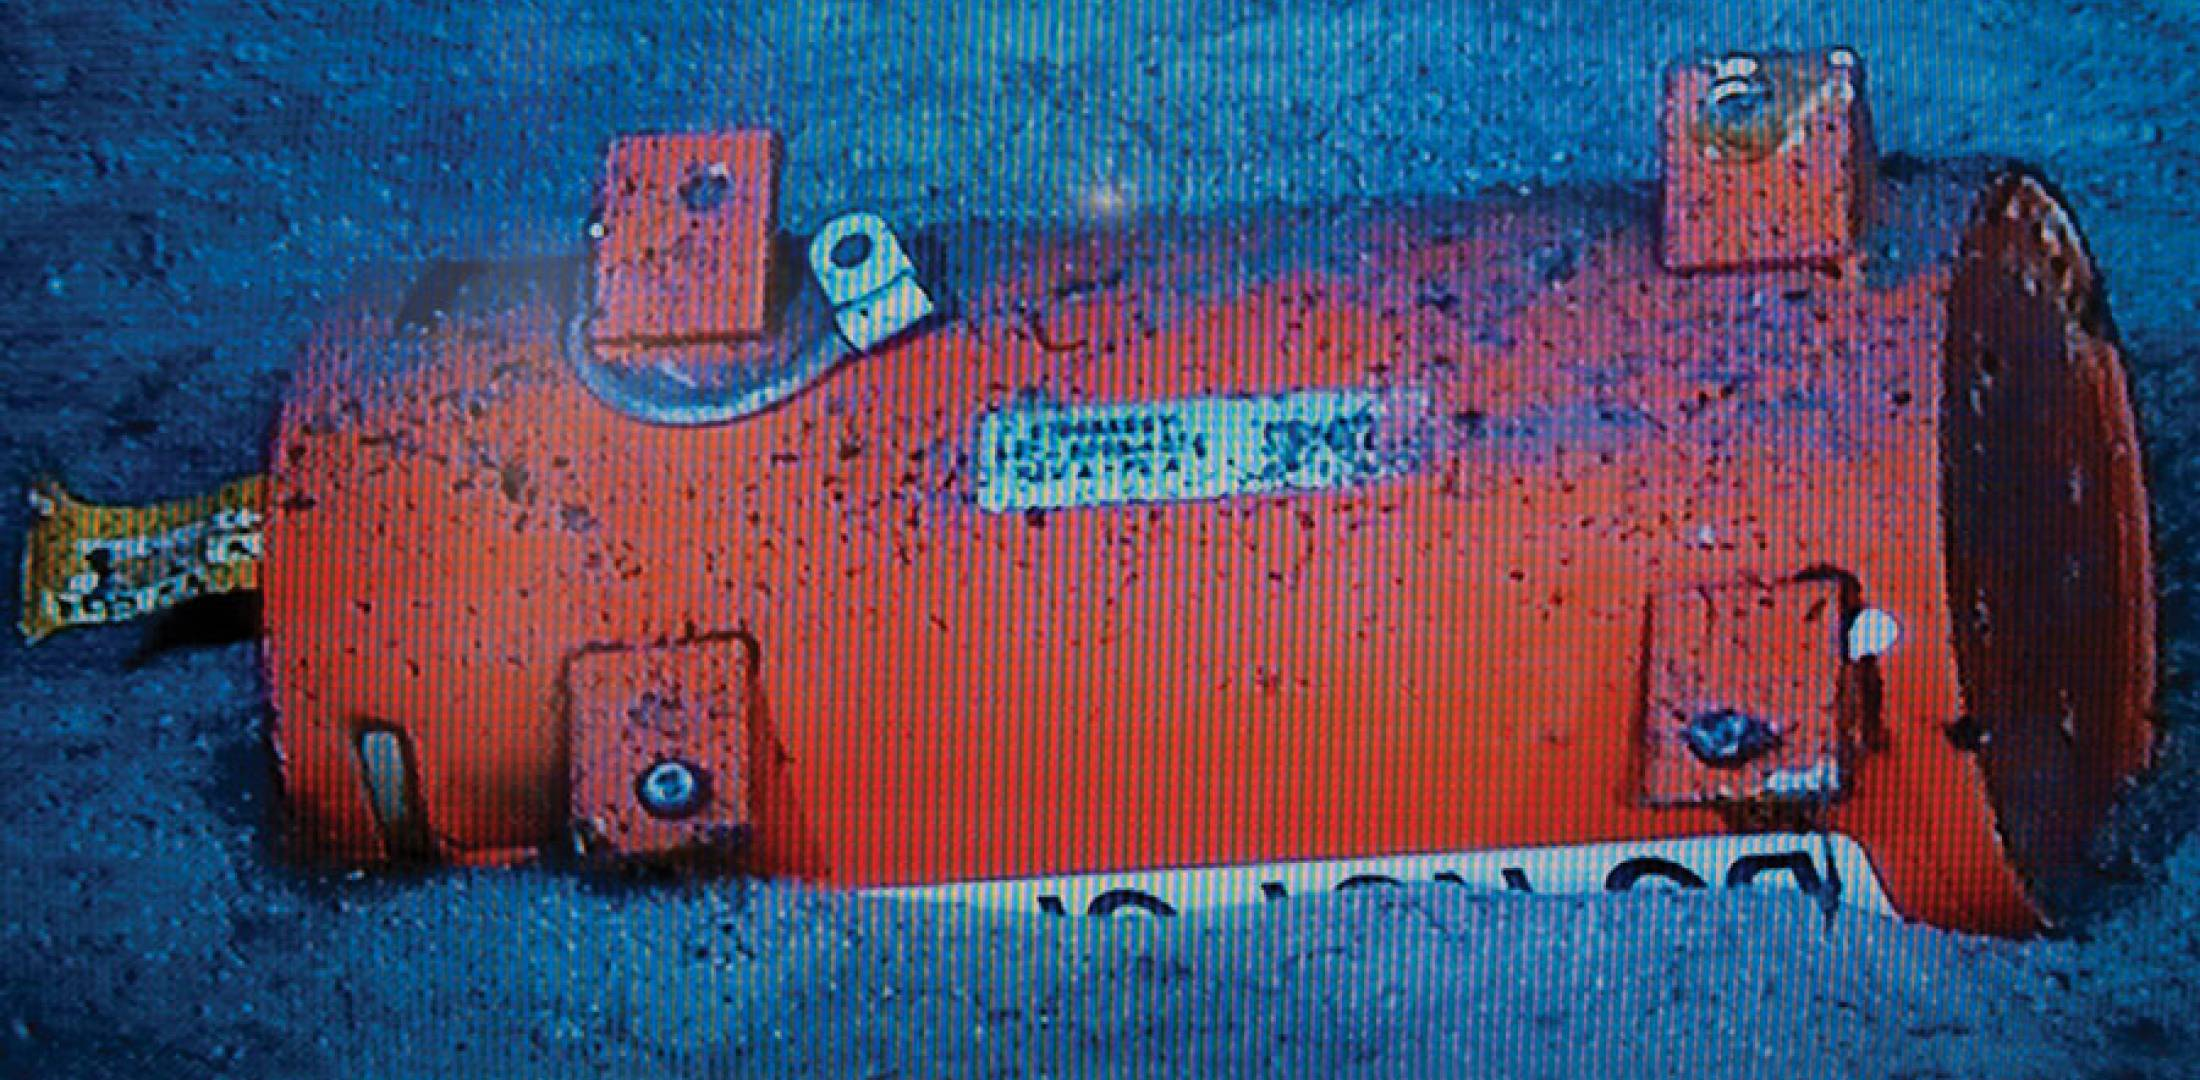 Flight 447 flight data recorder